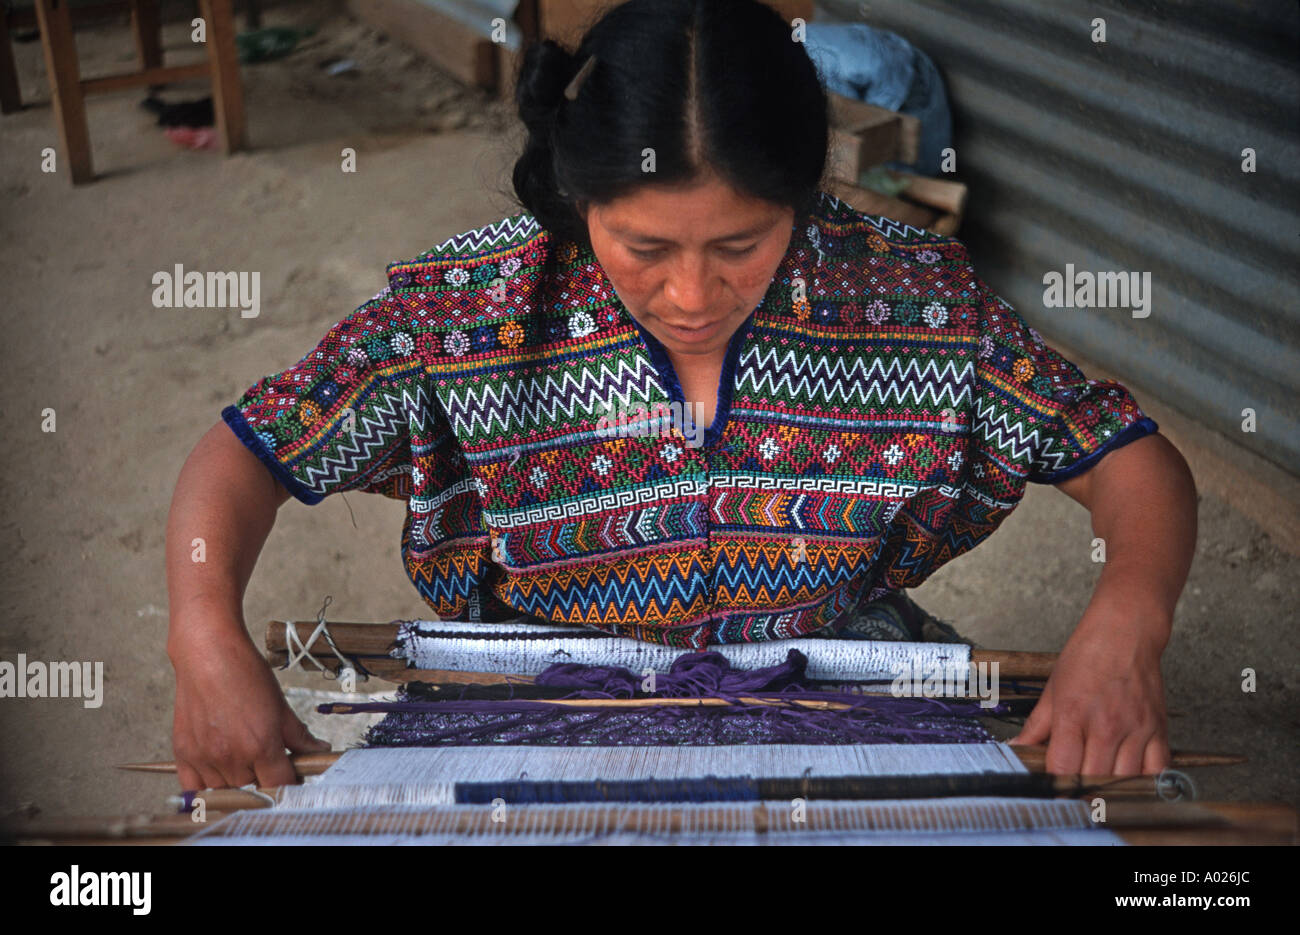 Maya woman from San Martin Jilotepeque working on a hipstrap loom and weaving a Maya style blouse called a huipil Guatemala - Stock Image